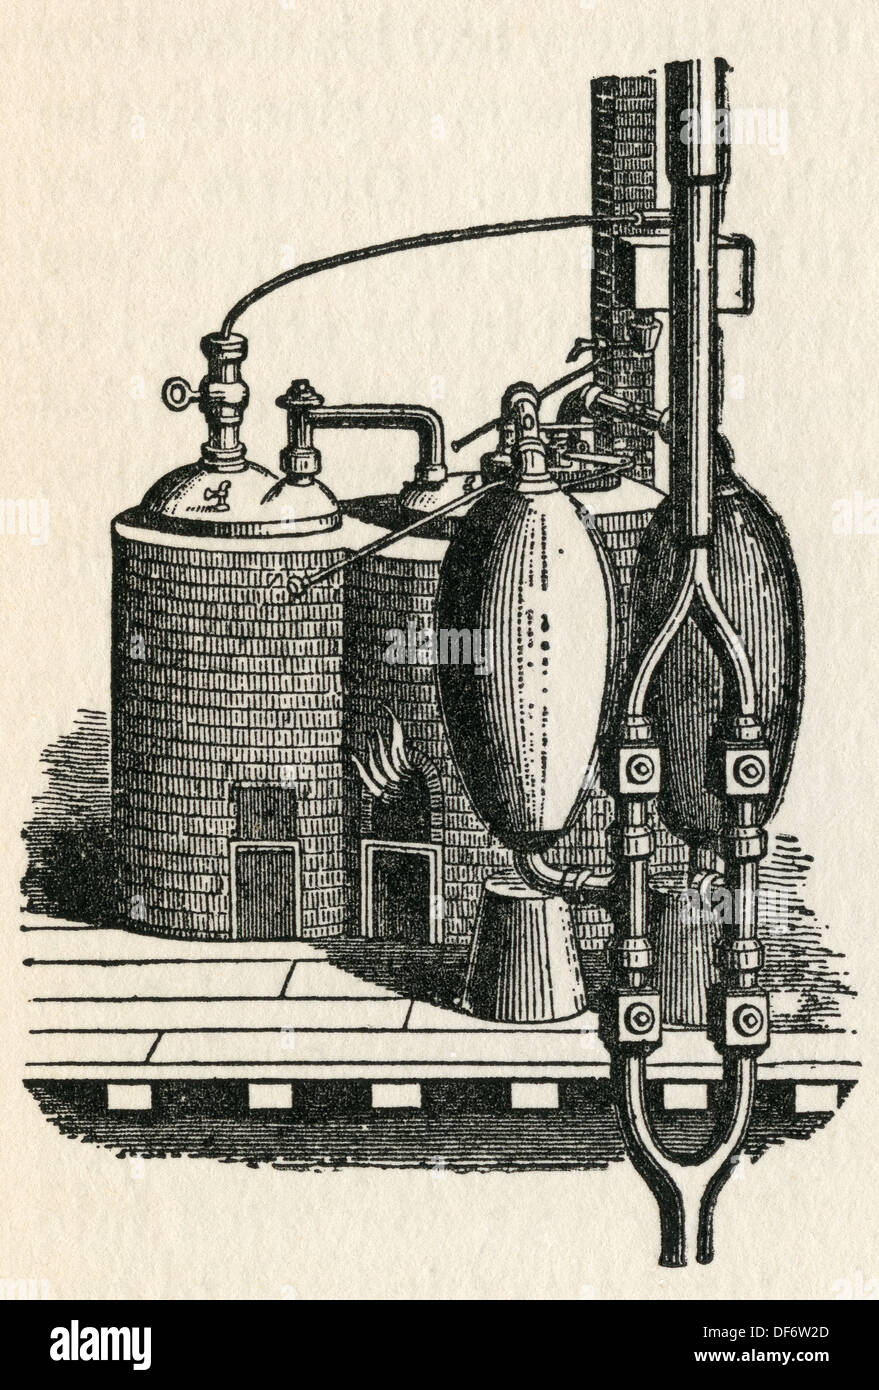 The 1698 steam engine invented by Thomas Savery. From The Romance of the  Merchant Ship, published 1931.